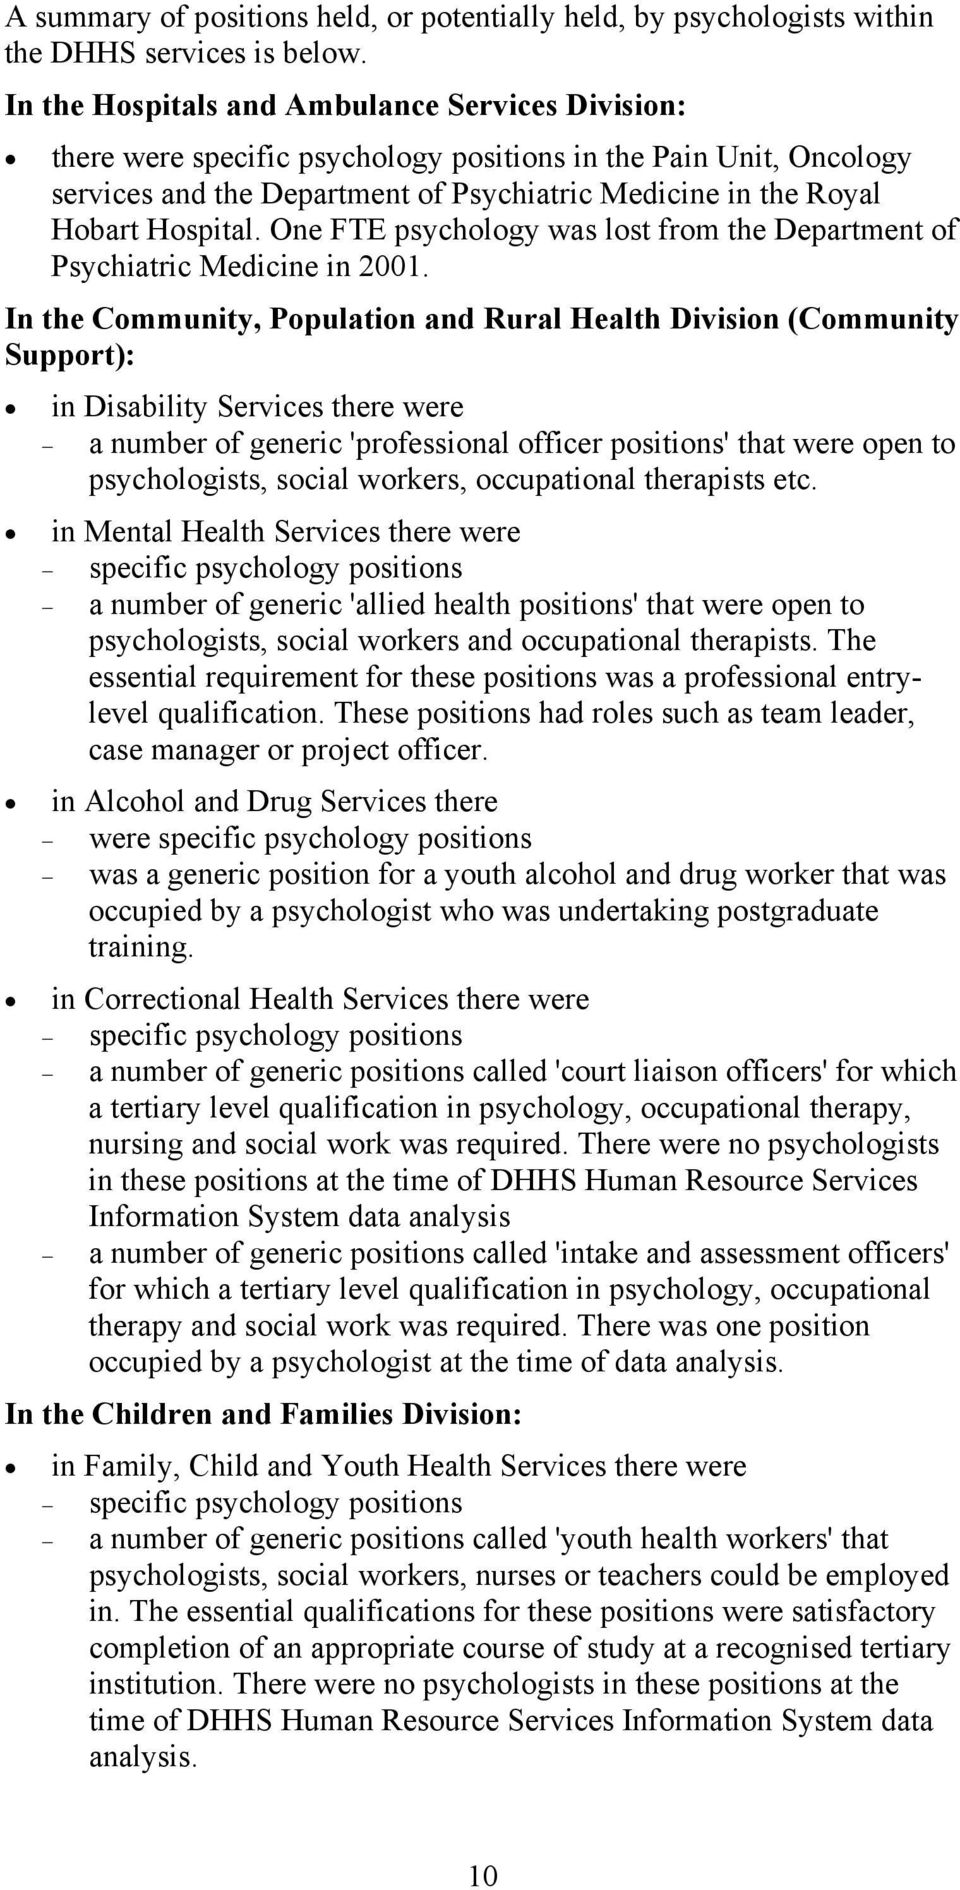 One FTE psychology was lost from the Department of Psychiatric Medicine in 2001.